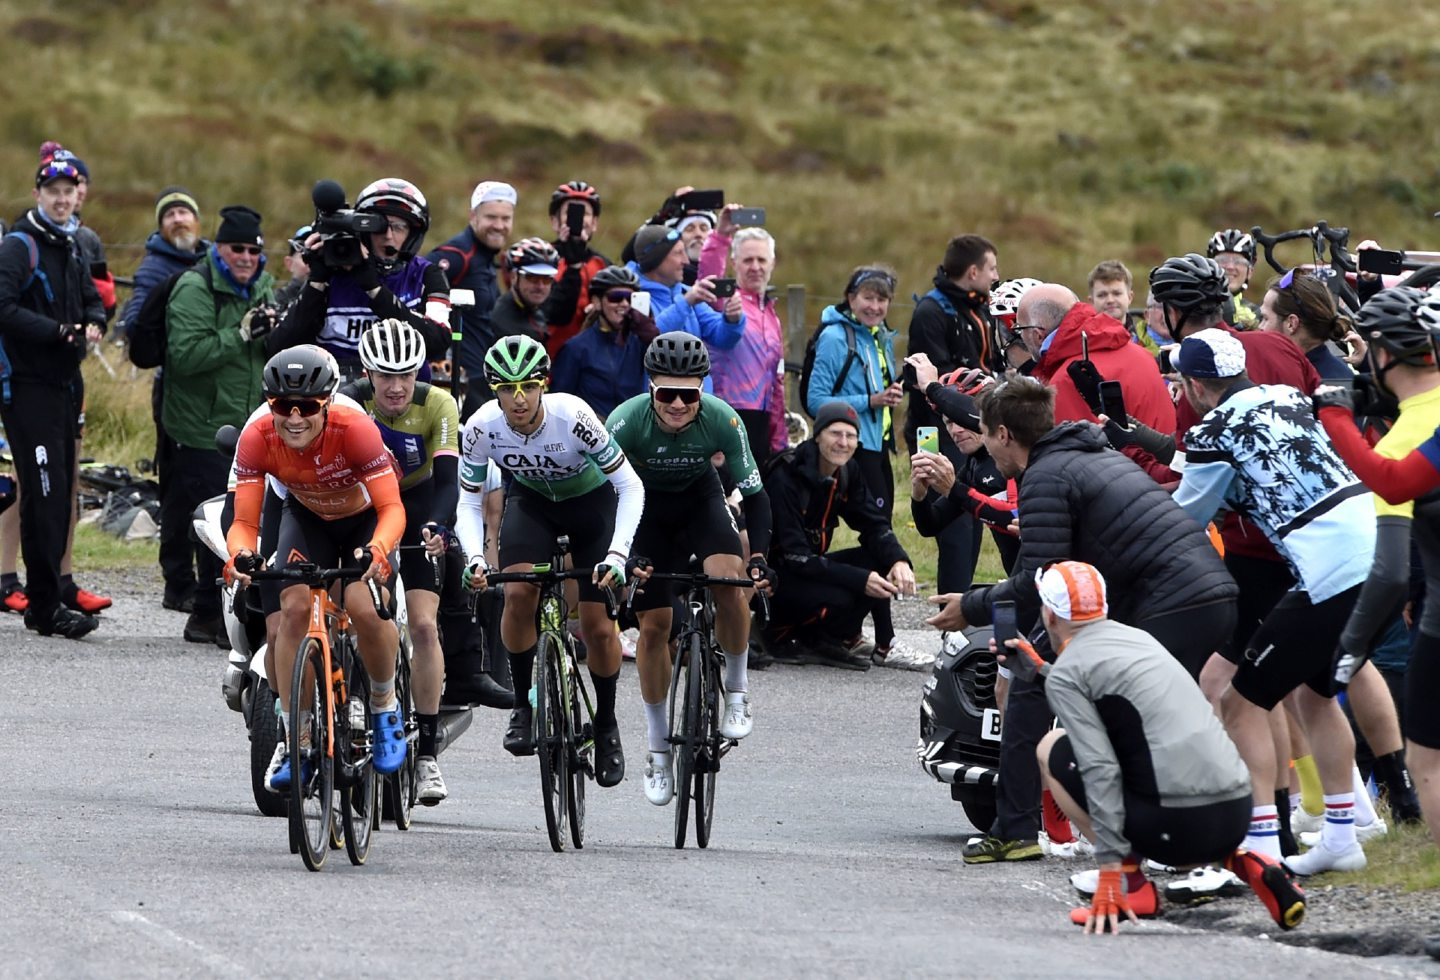 Tour of Britain have to be catalyst for change to 'hostile' perspective to biking, say campaigners